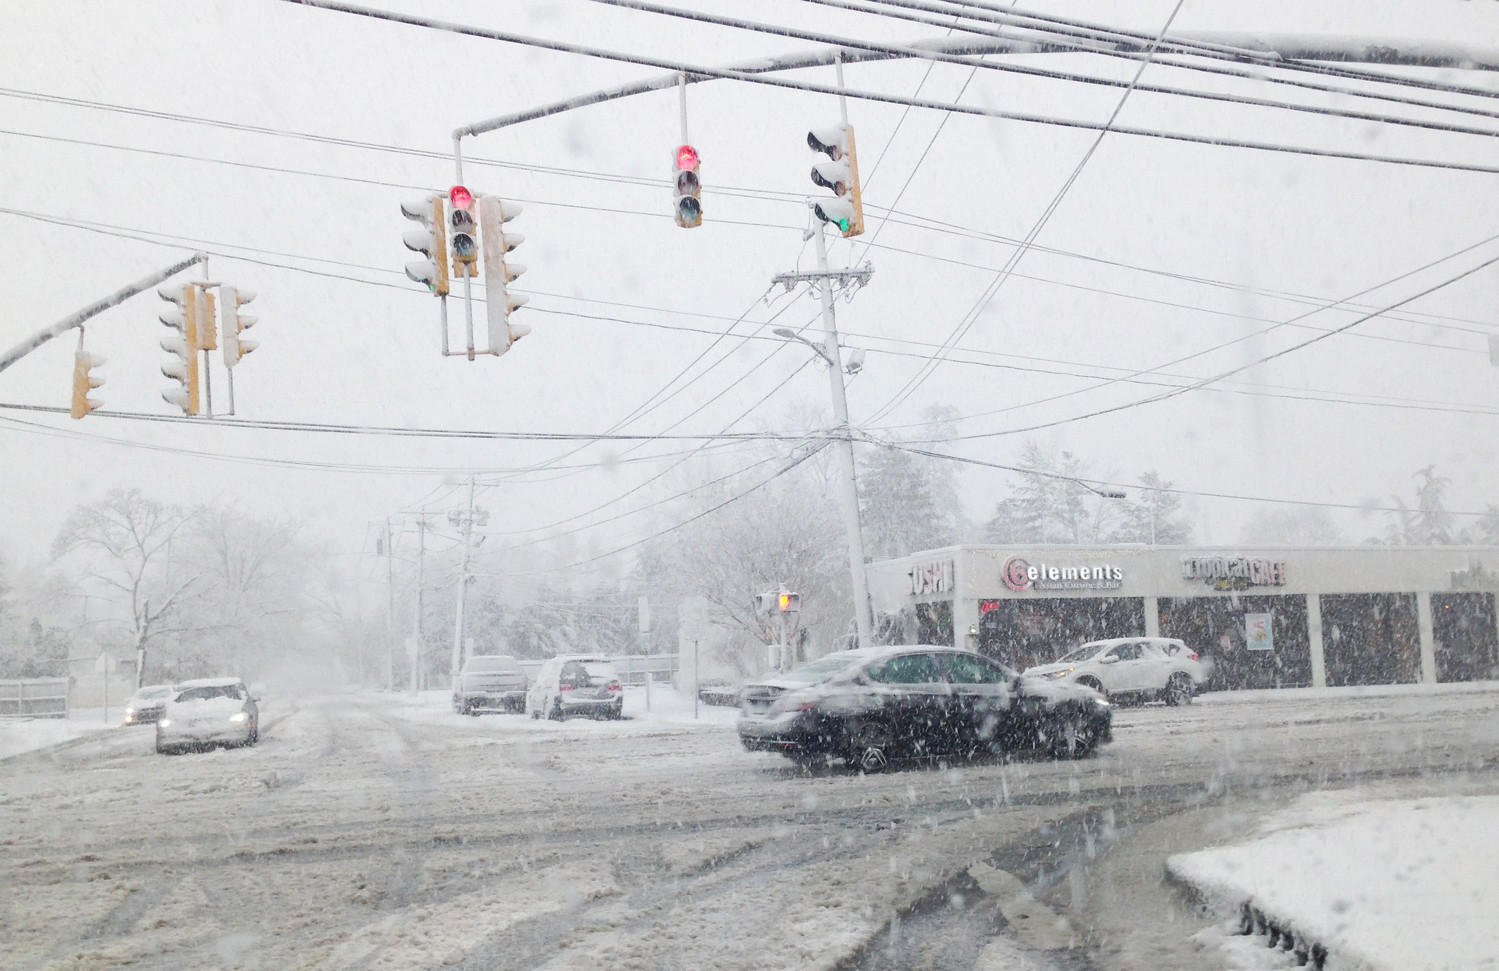 For the fourth time in March, the National Weather Service was predicting that a nor'easter would blow into the Long Island Region. This one was expected to hit Wednesday. Above, a view of Merrick Road in Merrick during the March 7 nor'easter, which dropped four to six inches of snow across Nassau County.